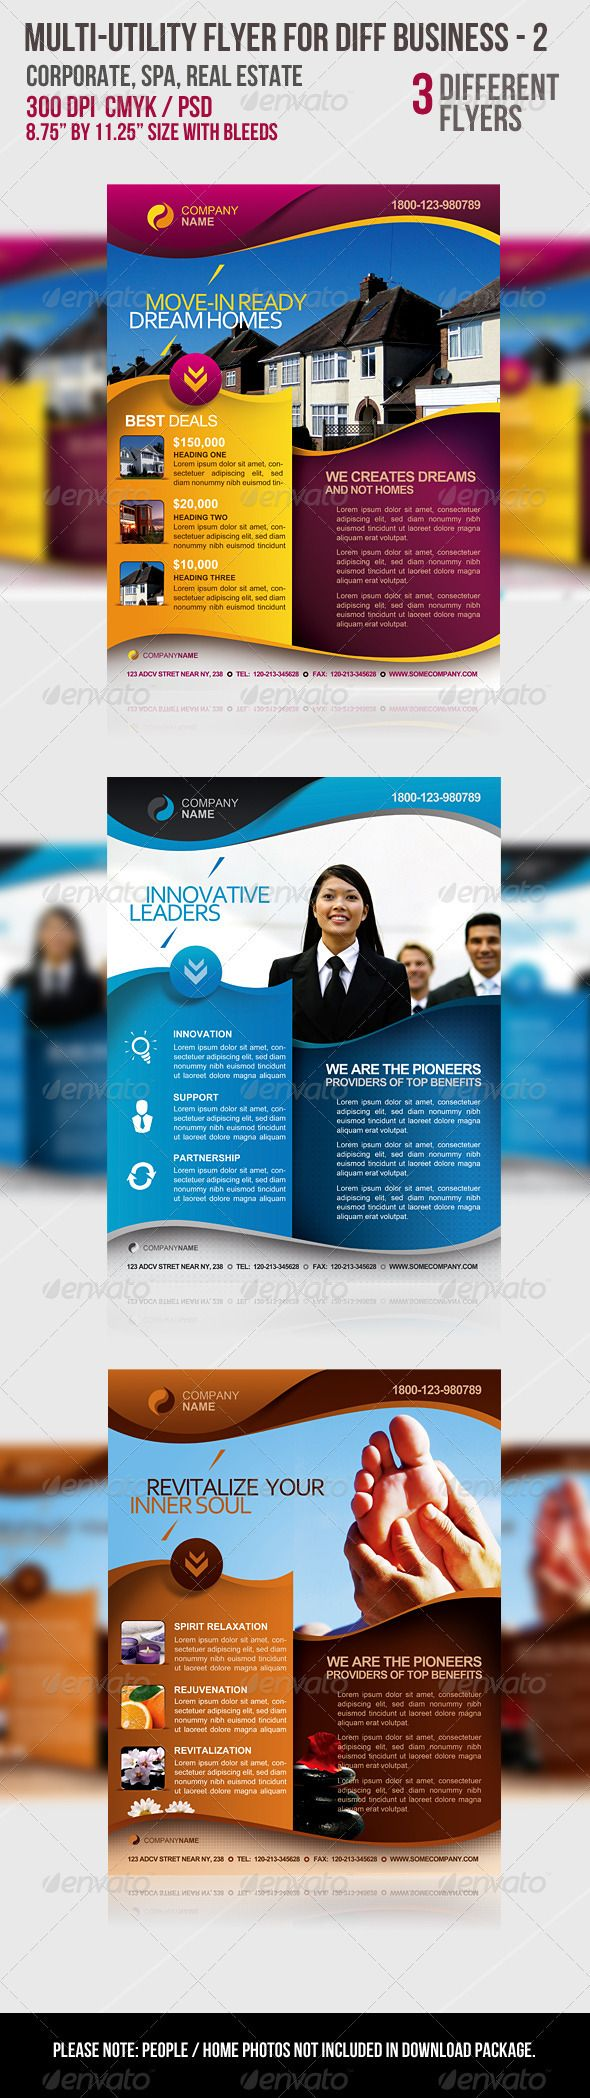 images about real estate ads corporate 1000 images about real estate ads corporate brochure design real estate business and for